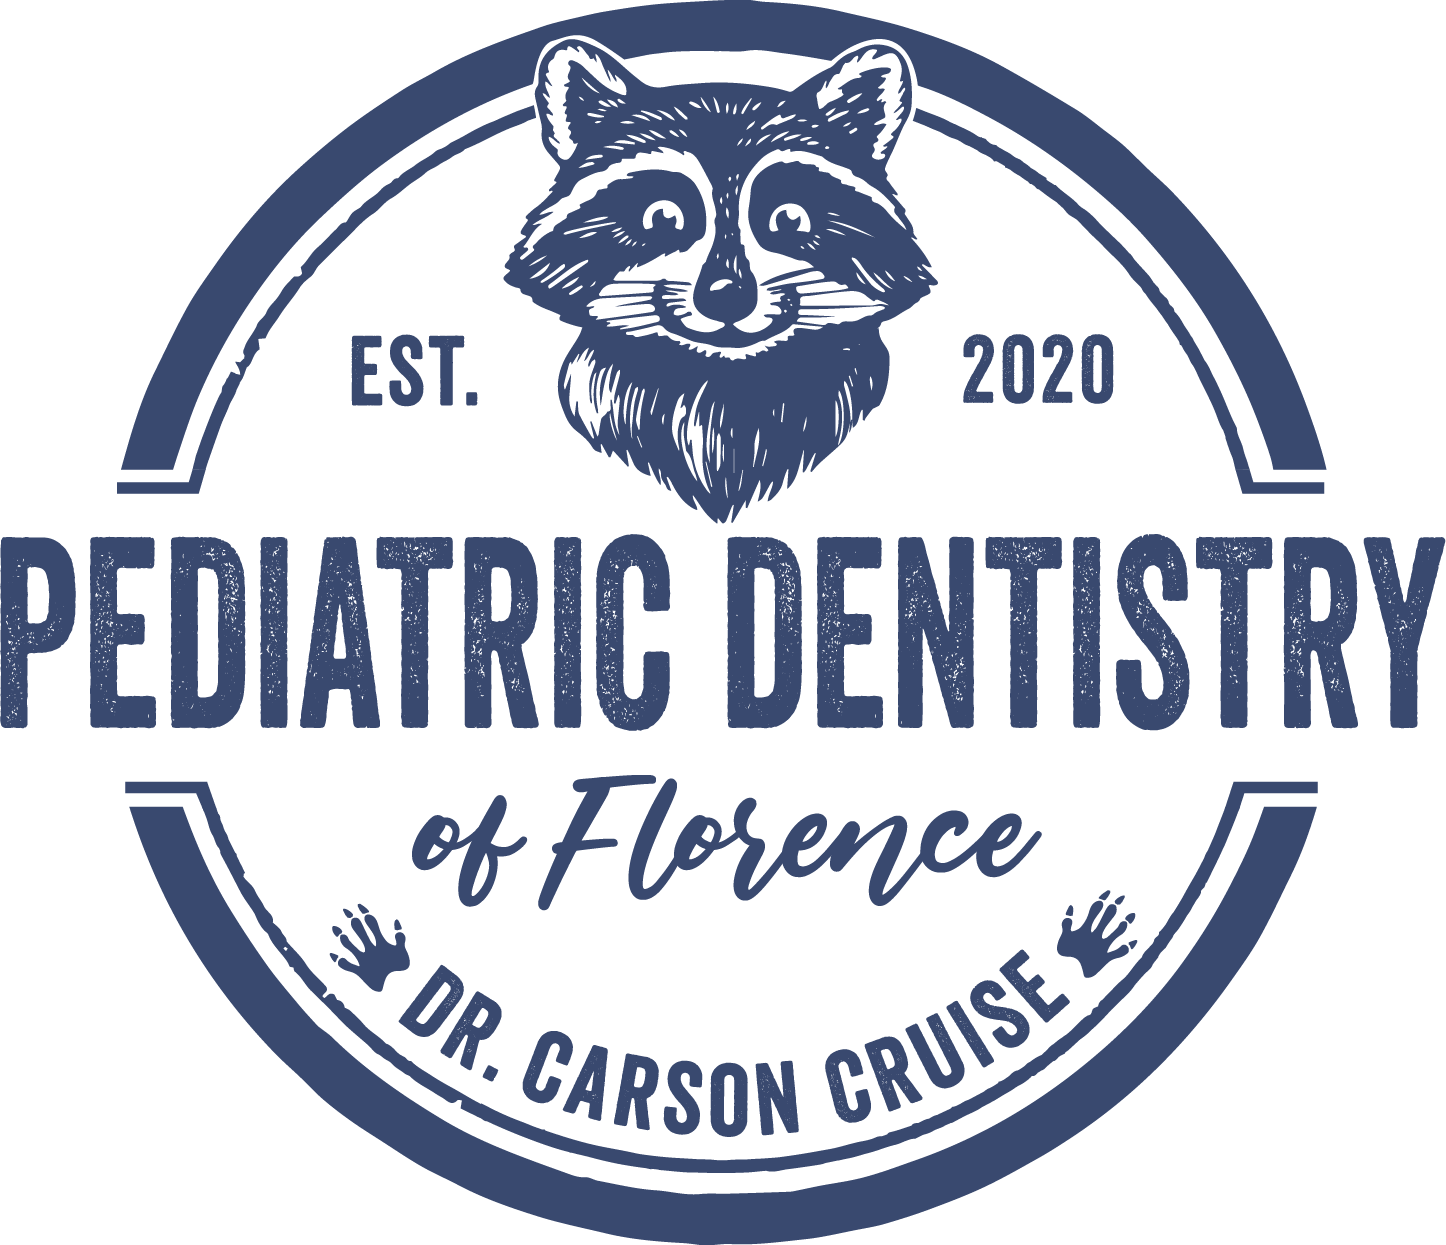 The Pediatric Dental Clinic